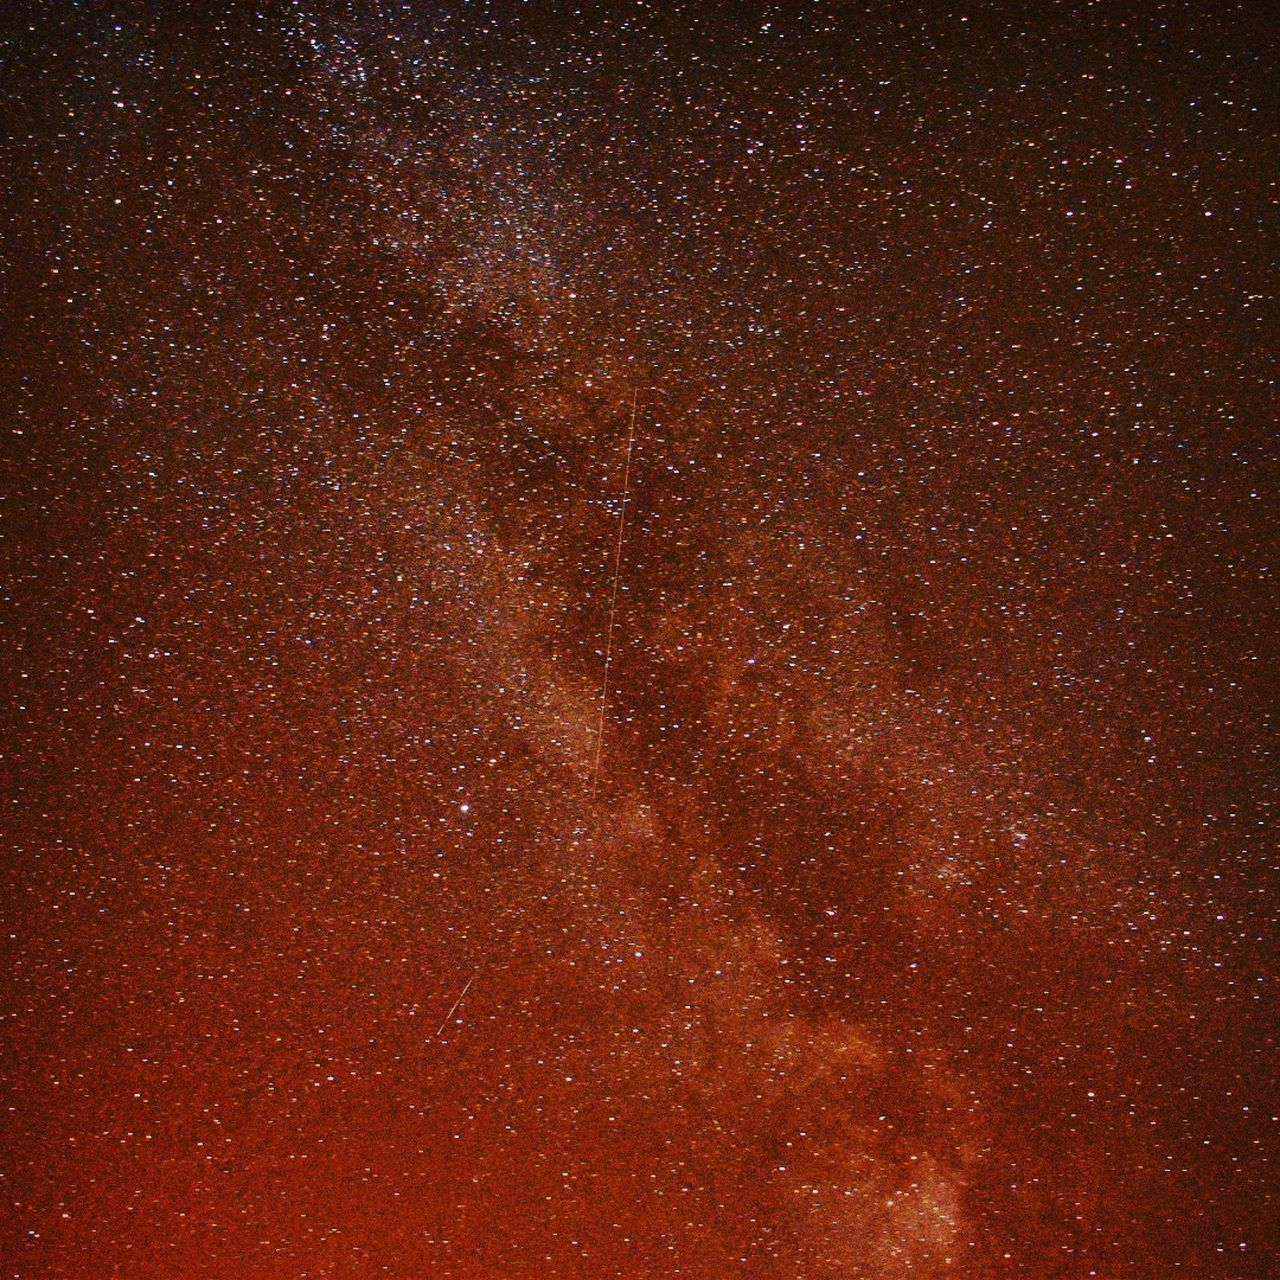 Star - Space Astronomy Galaxy Night Constellation Space Space And Astronomy Sky Milky Way Beauty In Nature Outdoors Luminosity